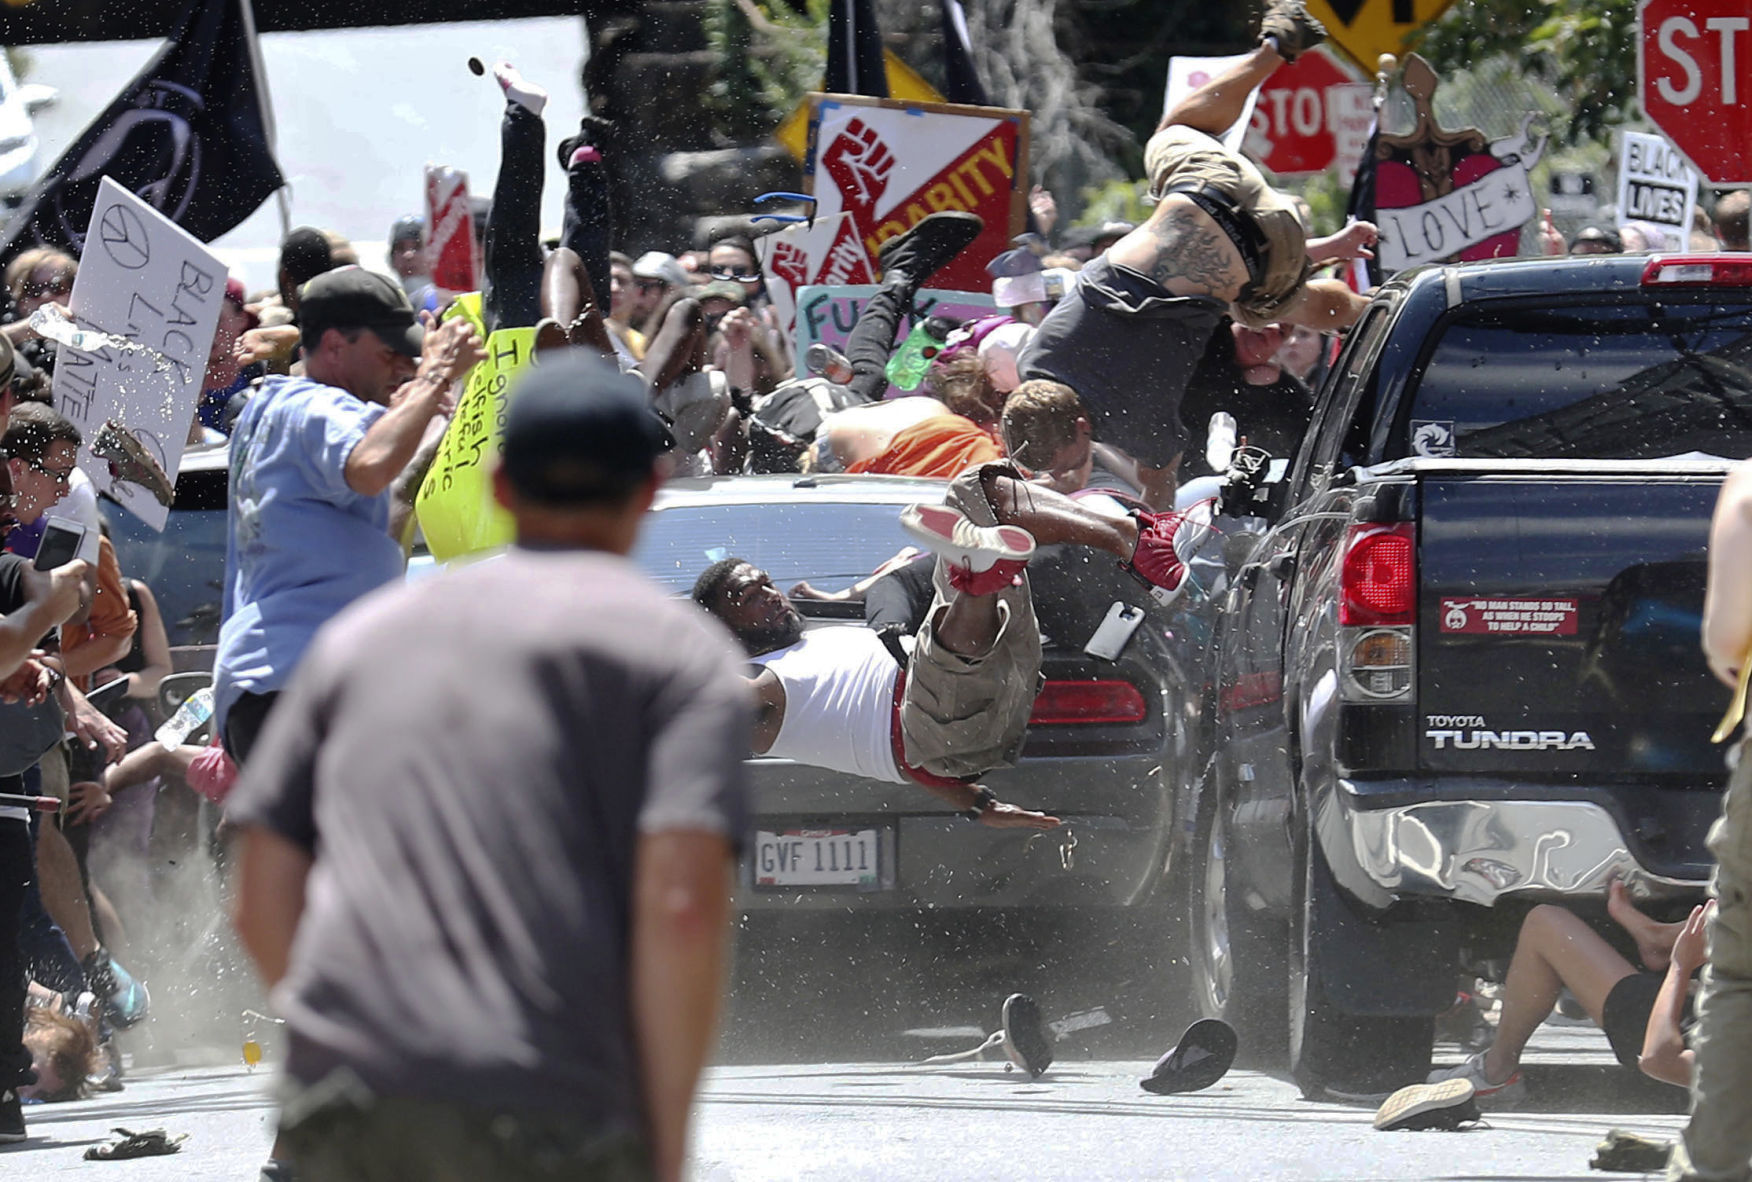 2 injured in deadly car-ramming incident in Charlottesville file lawsuit